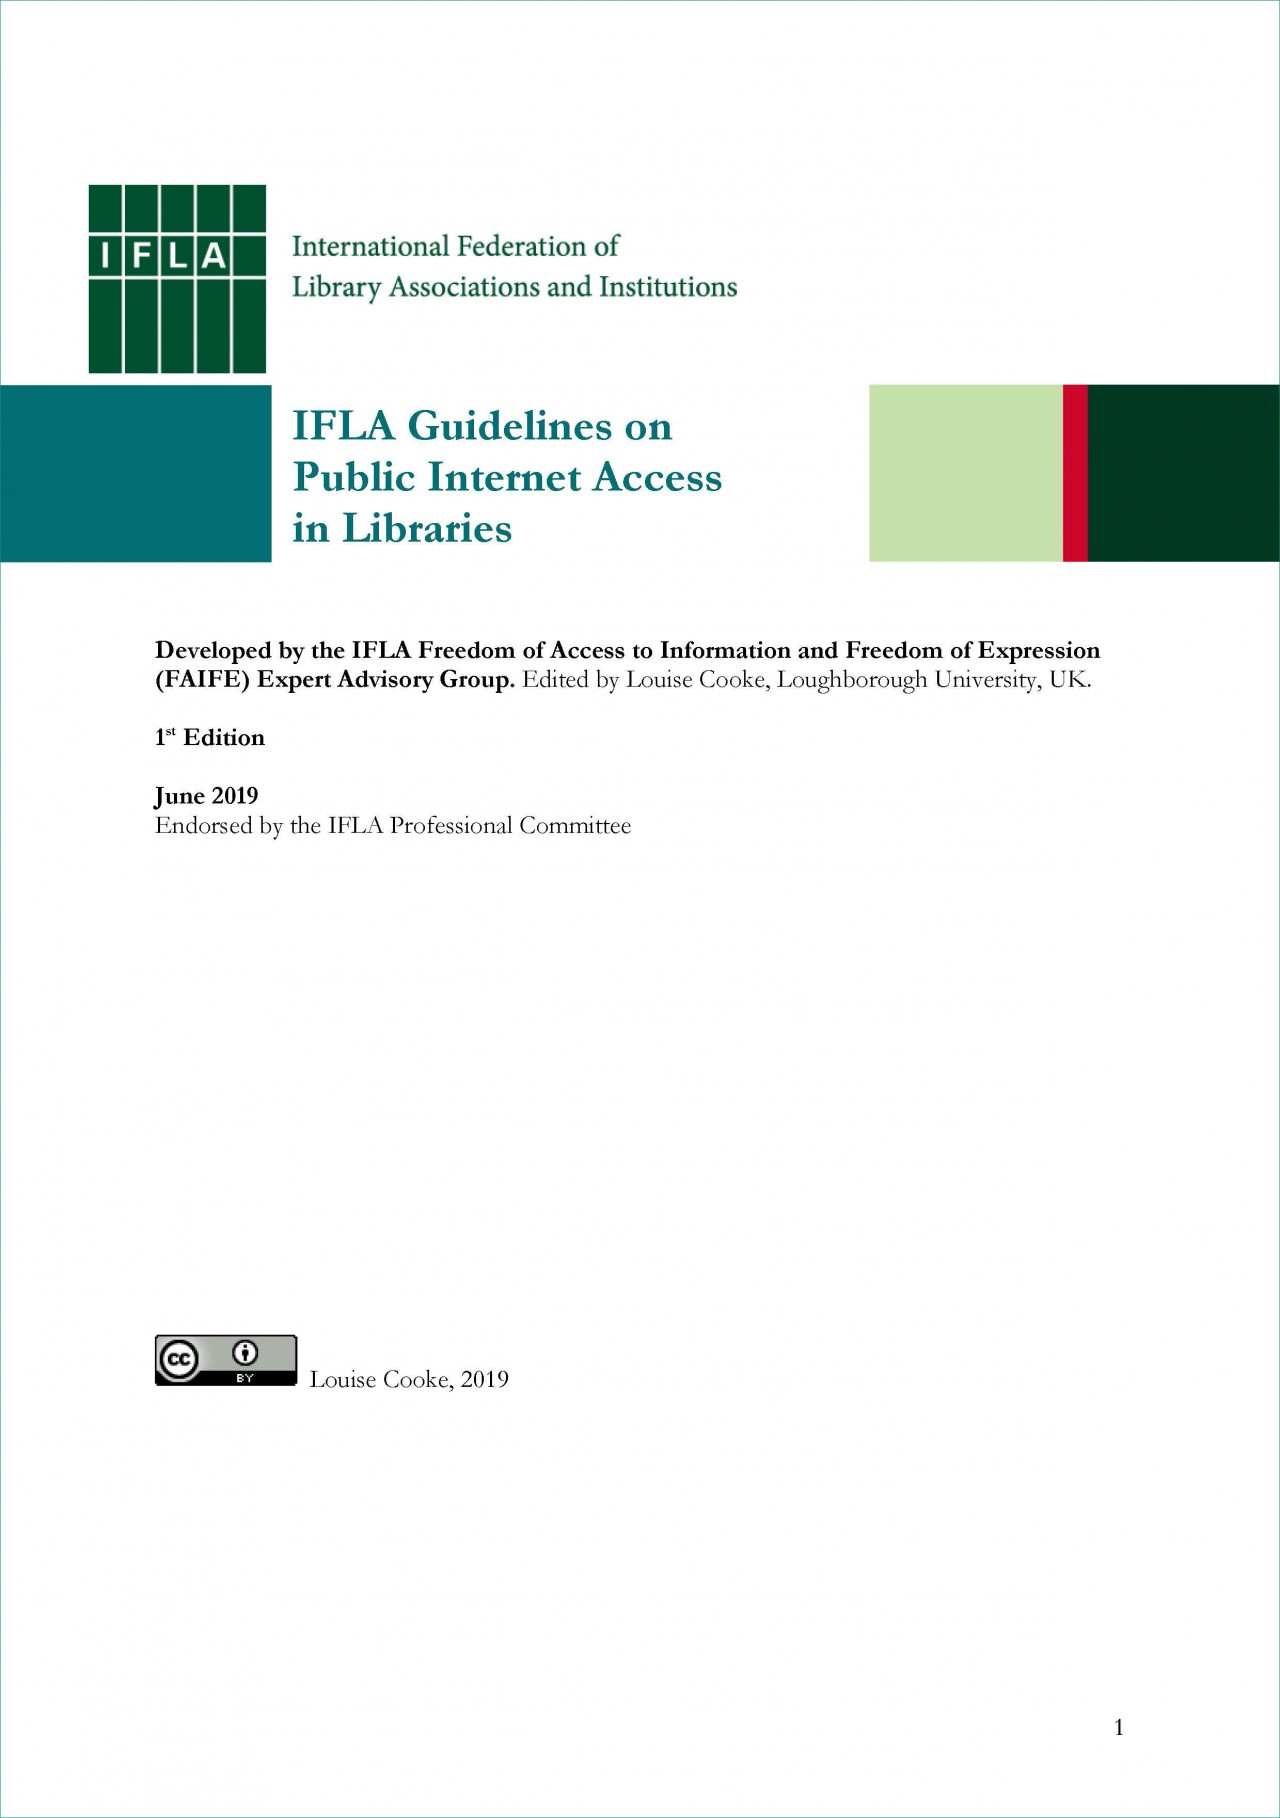 Guidelines on Public Internet Access in Libraries